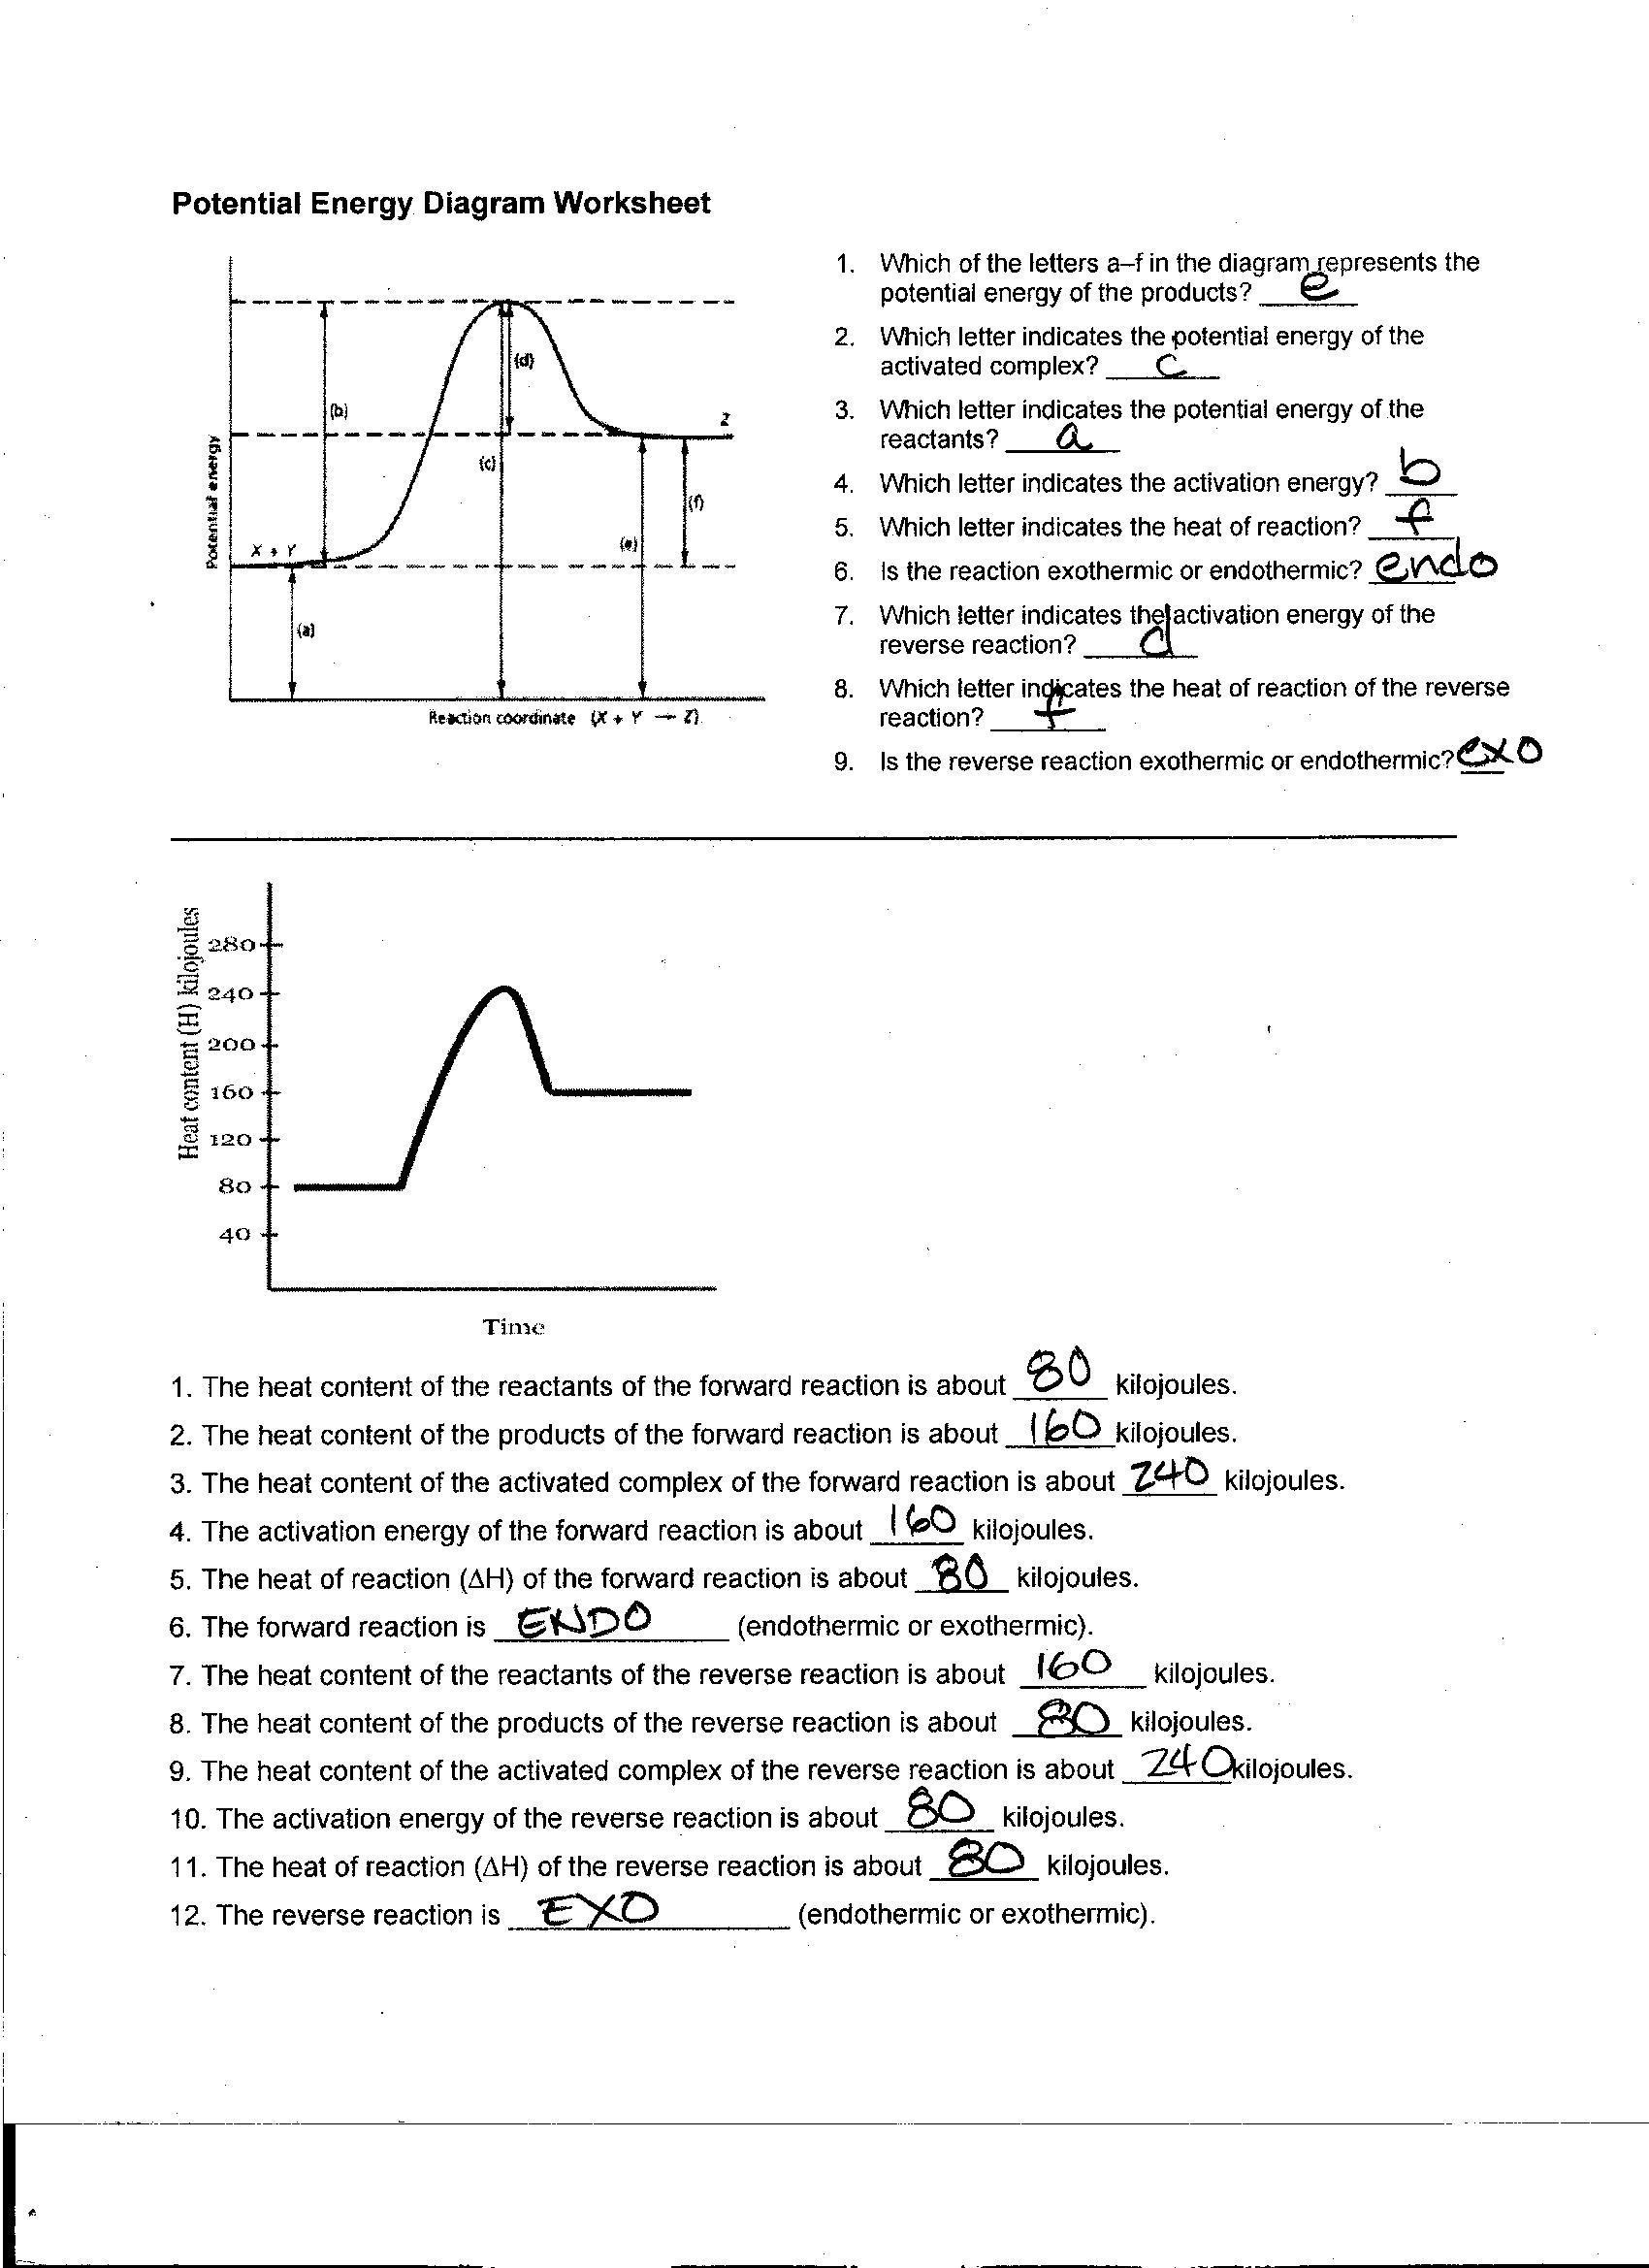 Counting Subatomic Particles Worksheet